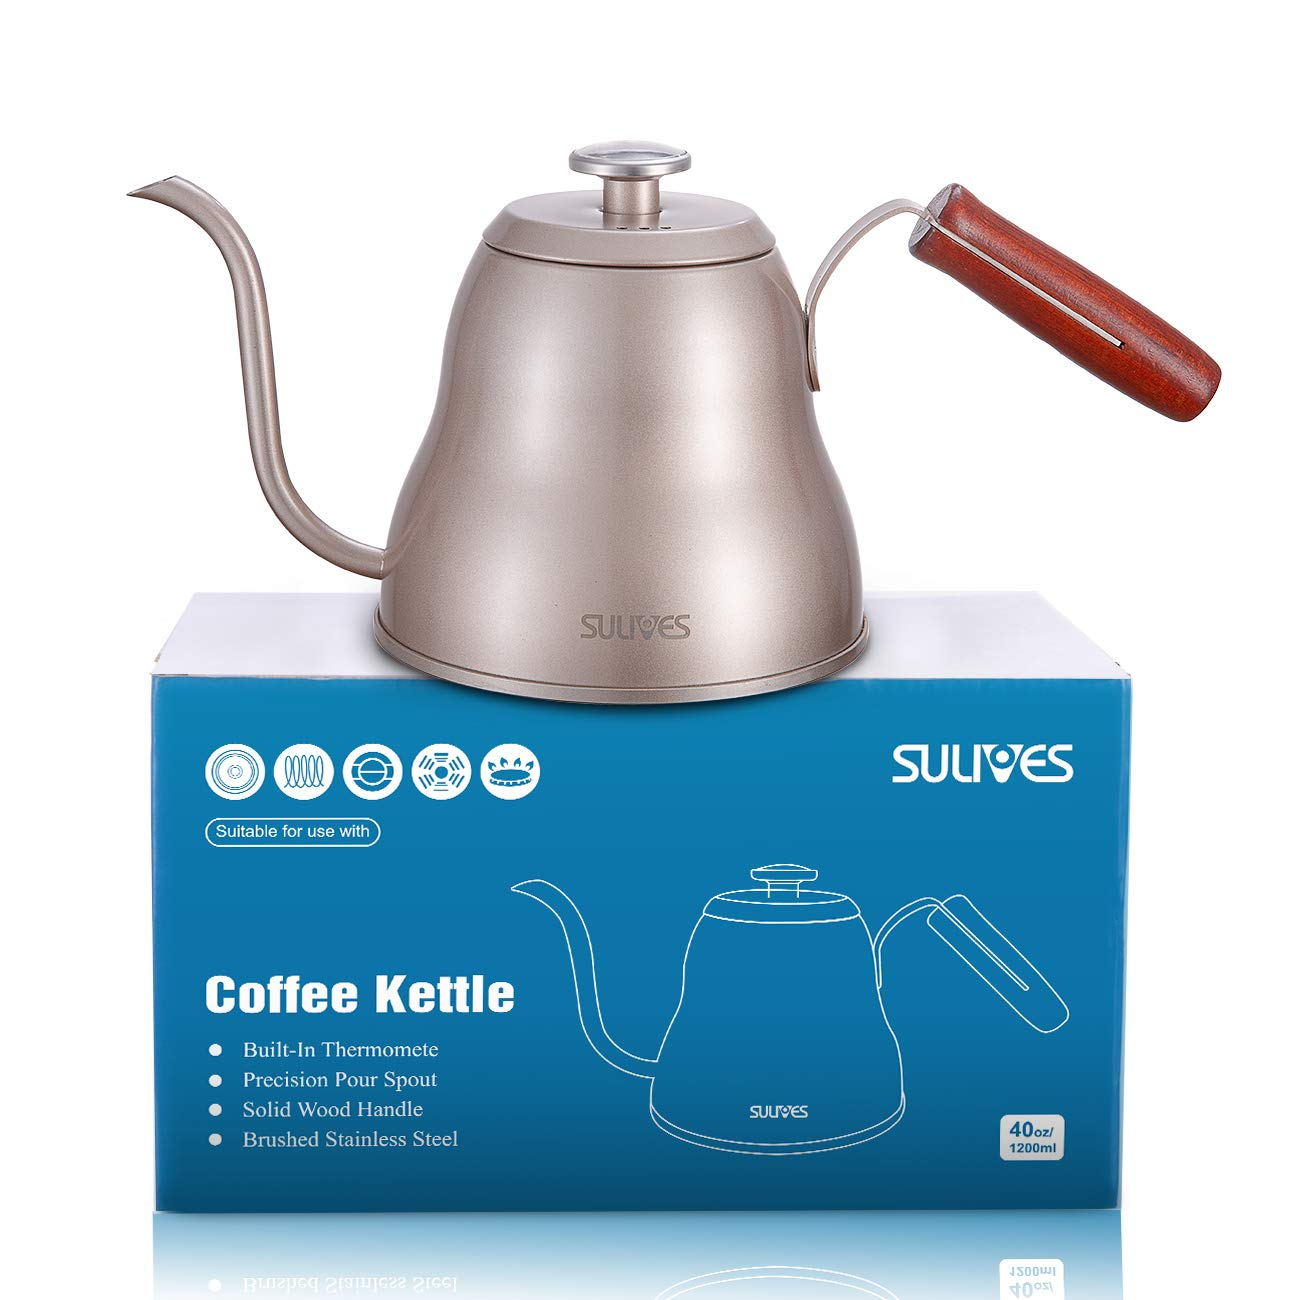 SULIVES 1.2L/40oz Stainless Steel with Built-in Thermometer Pour Over Coffee Kettle, Gold by SULIVES